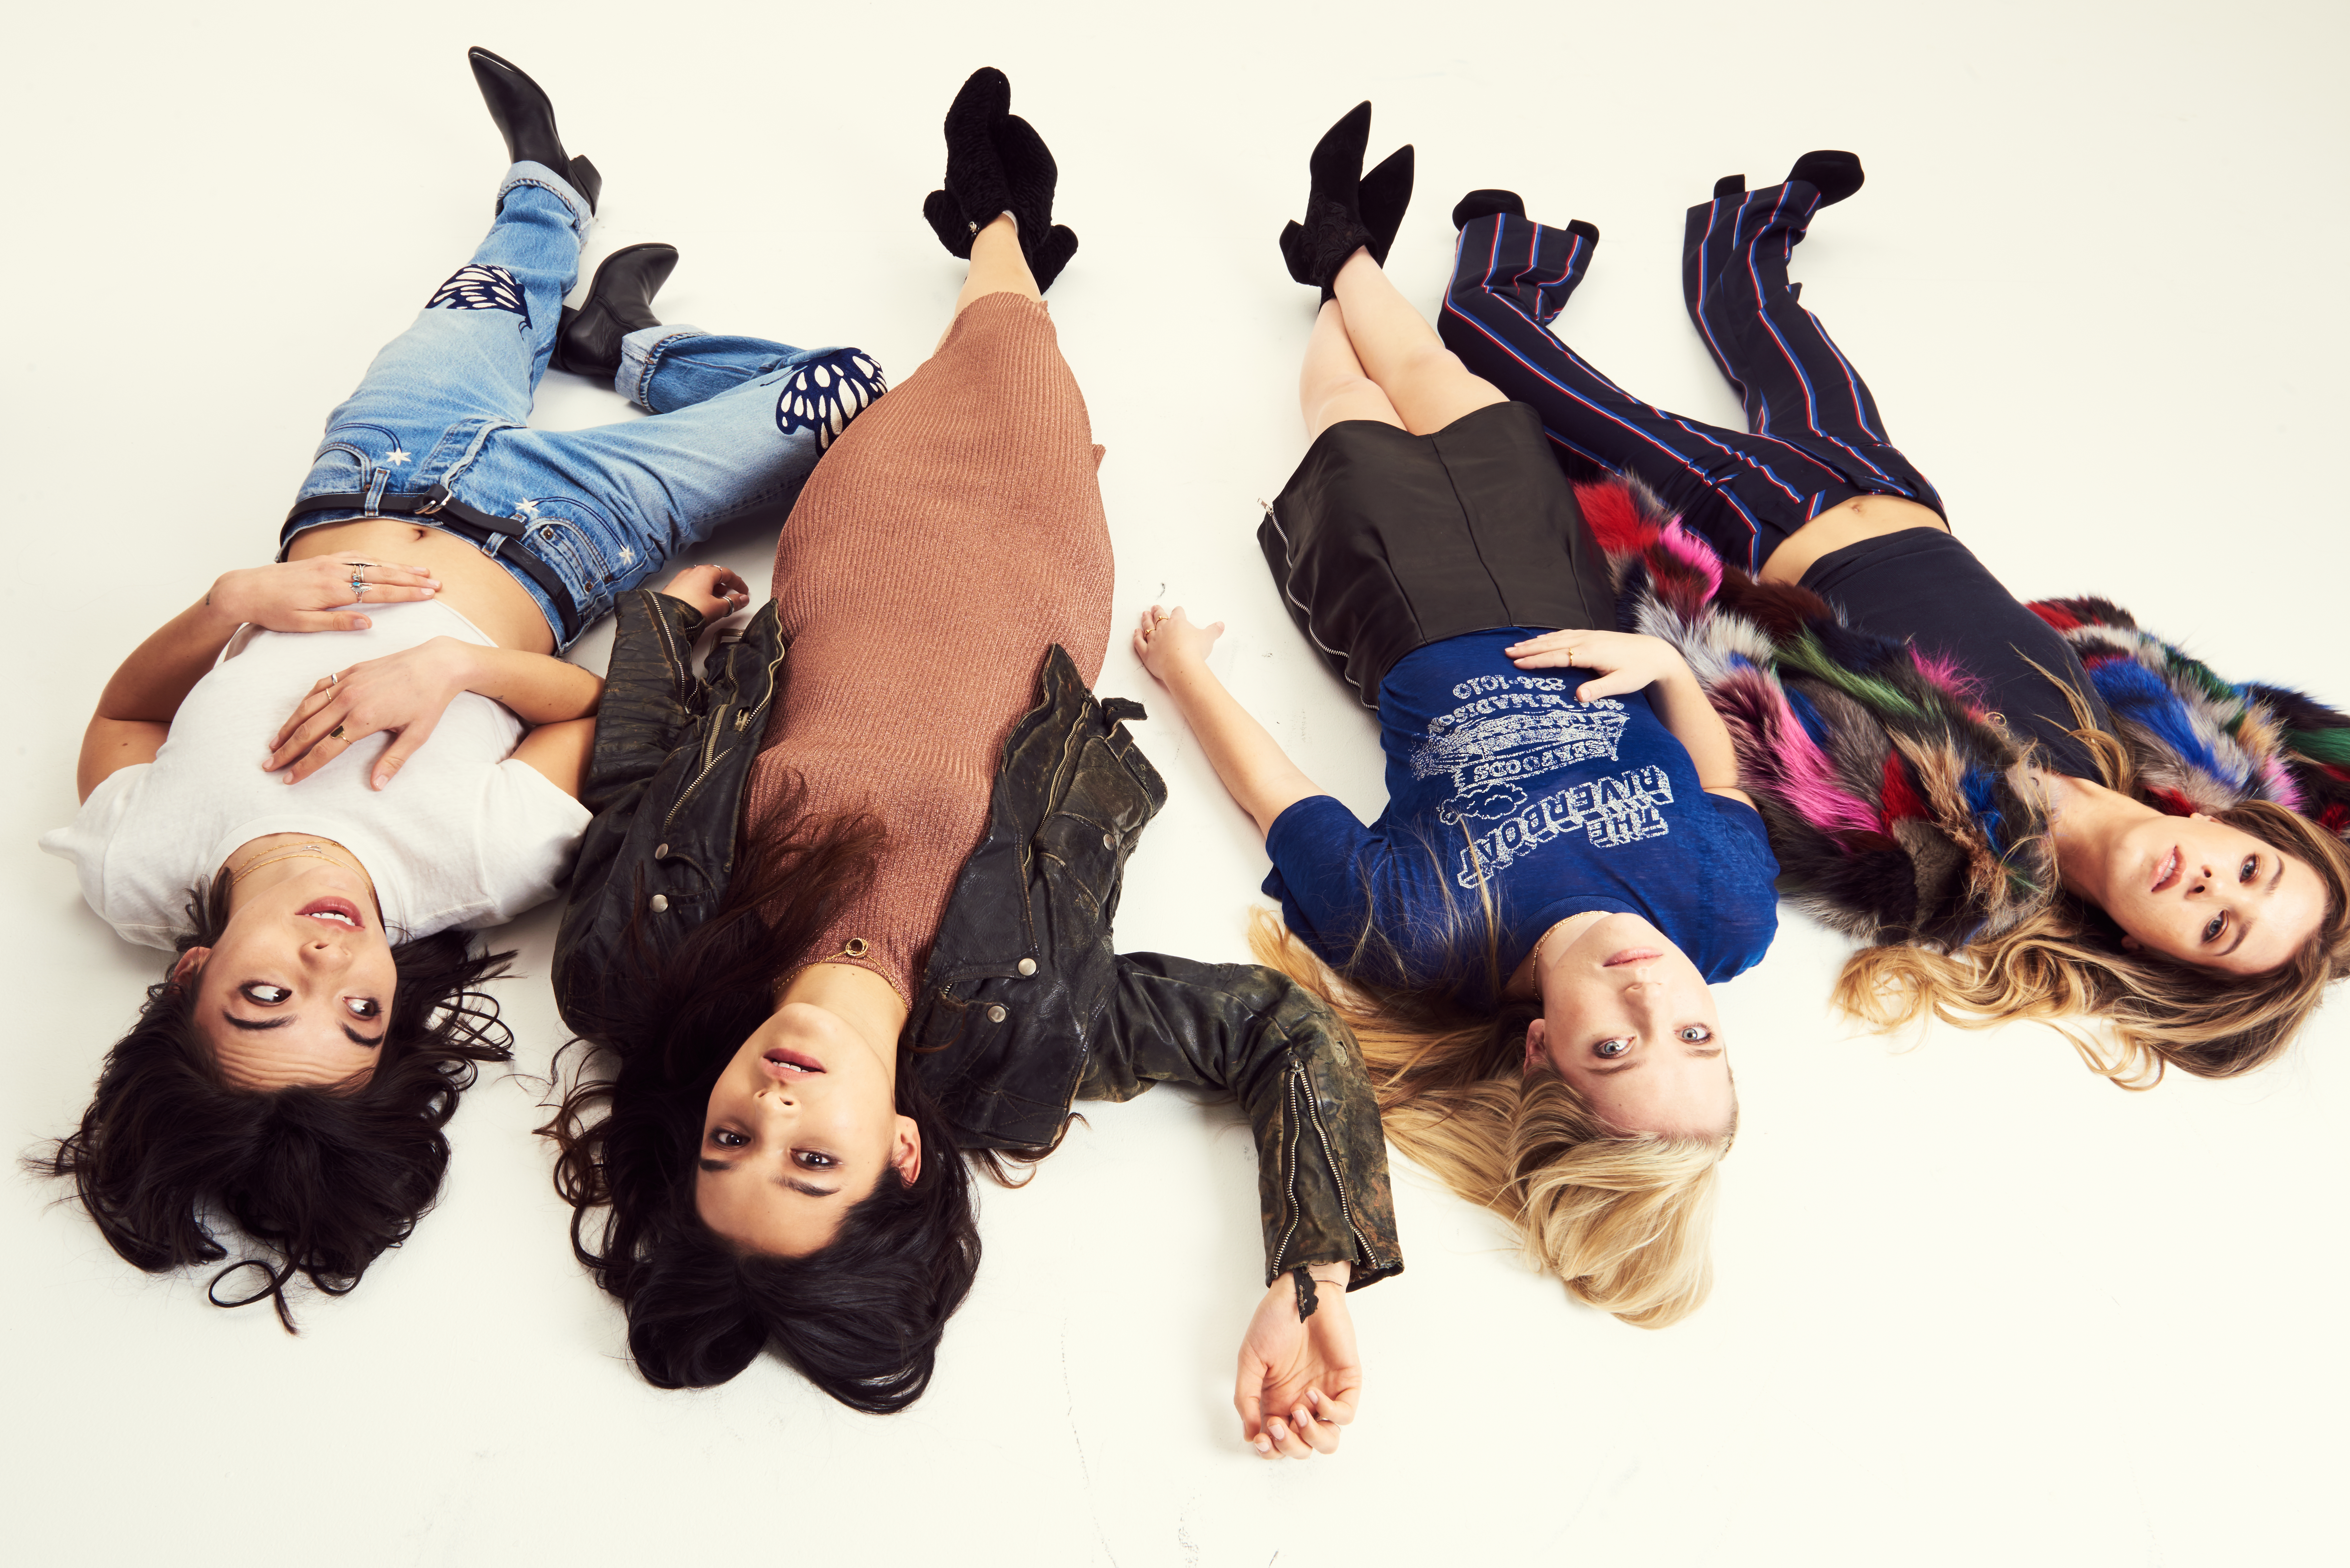 The Aces band photo lying on floor